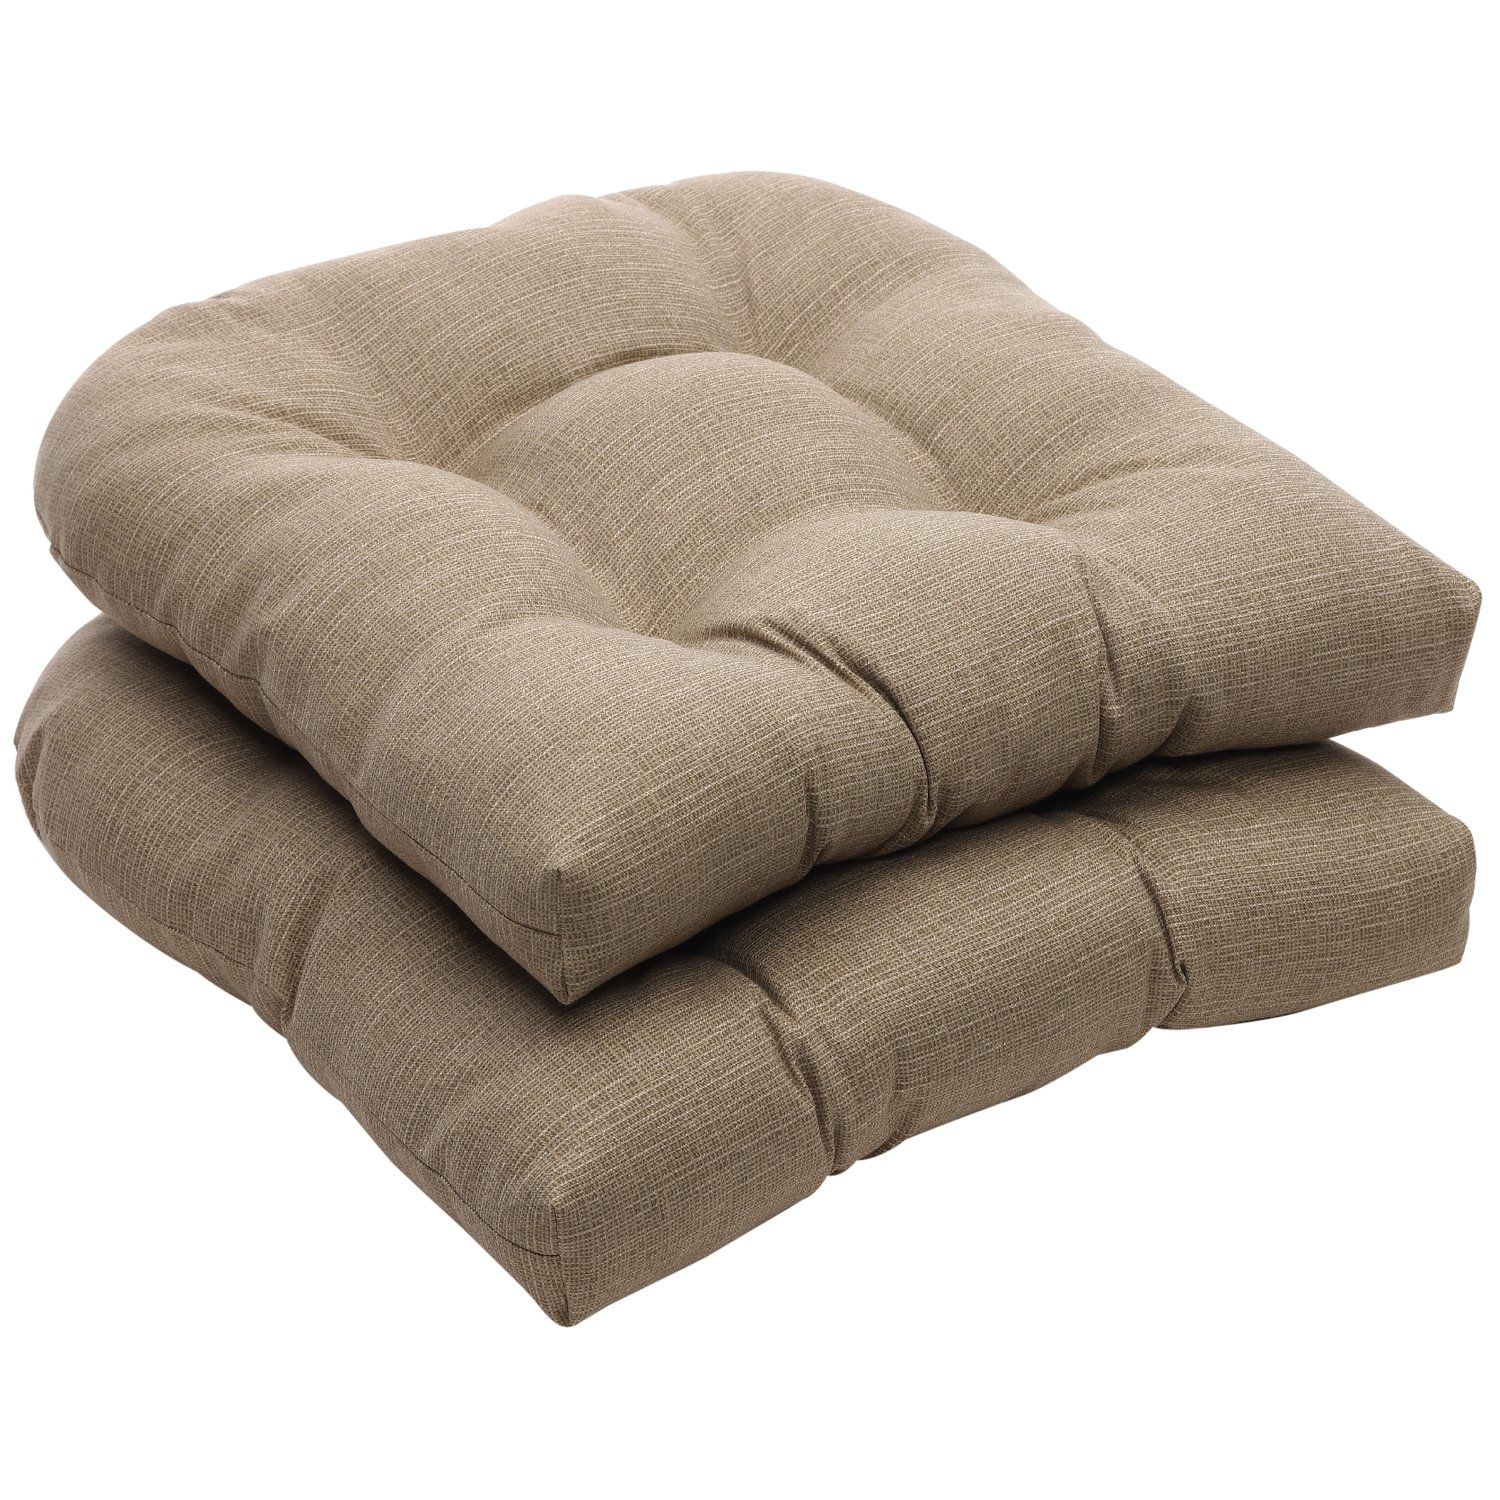 Patio Furniture Cushions Amazon Com Pillow Perfect Indoor Outdoor Taupe  Textured Solid Wicker Seat Cushions 2